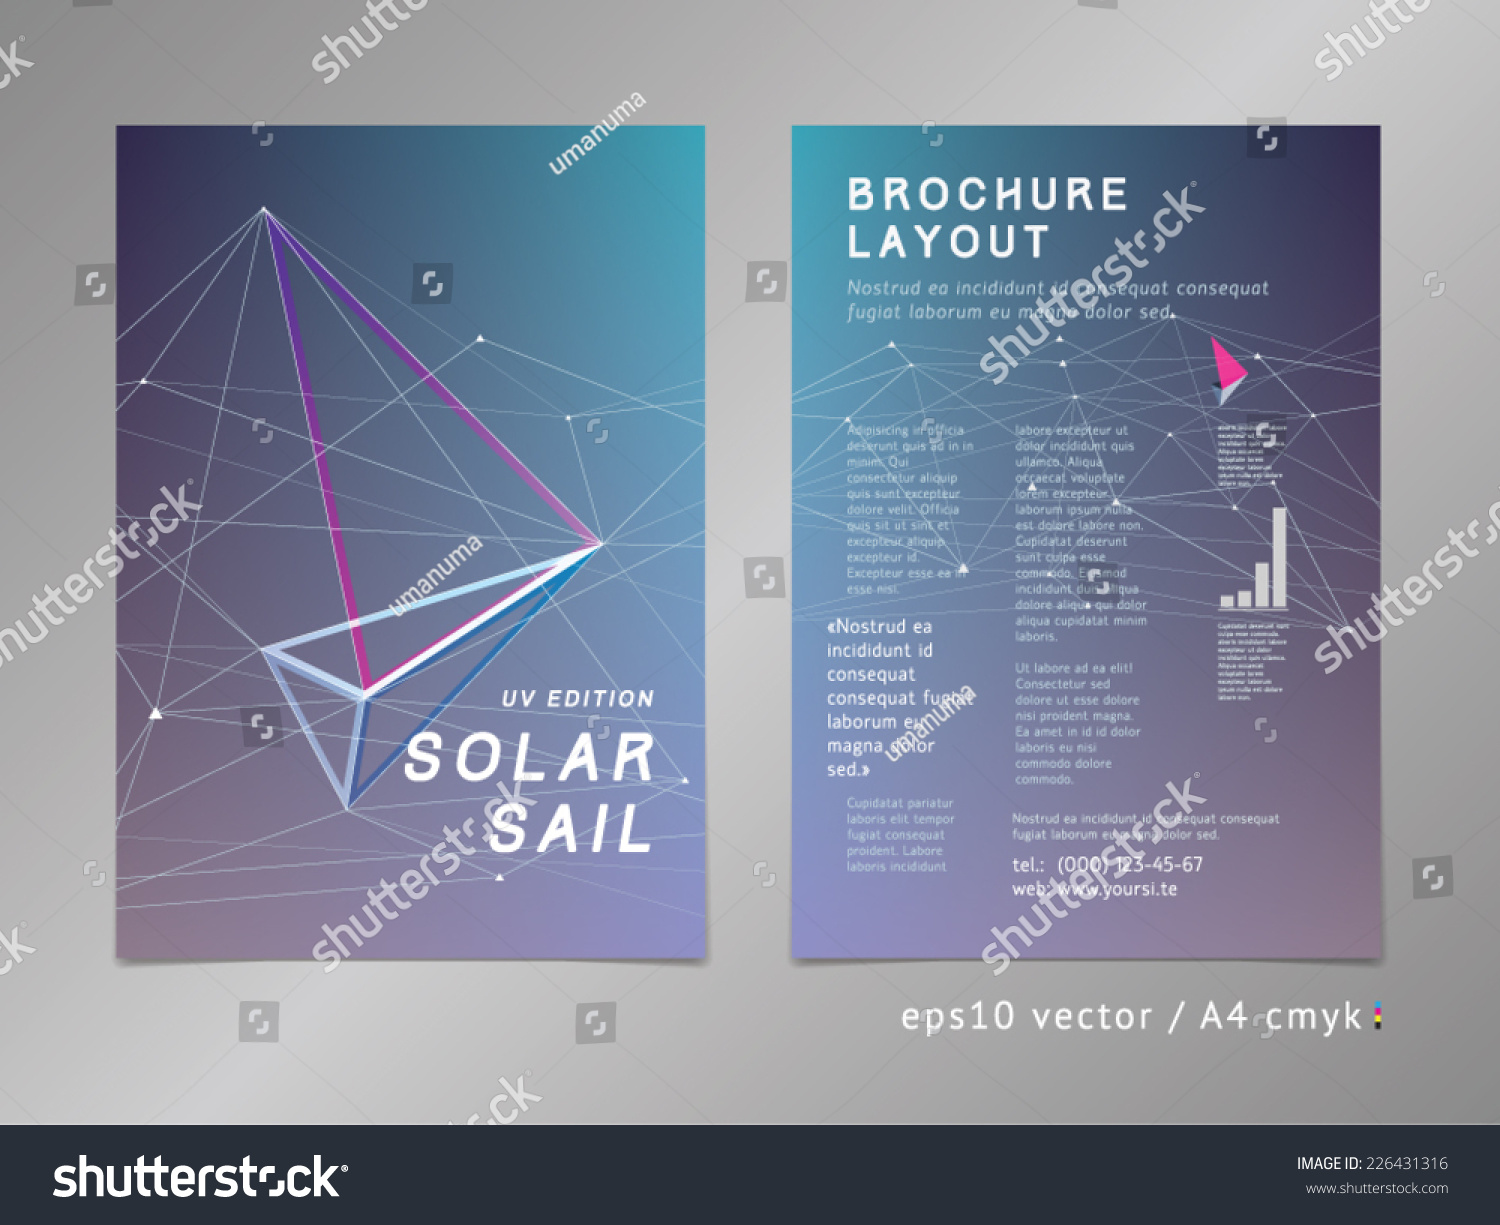 brochure leaflet cover page layout template stock vector  brochure leaflet cover page layout template polygonal design geometric sharp surfaces